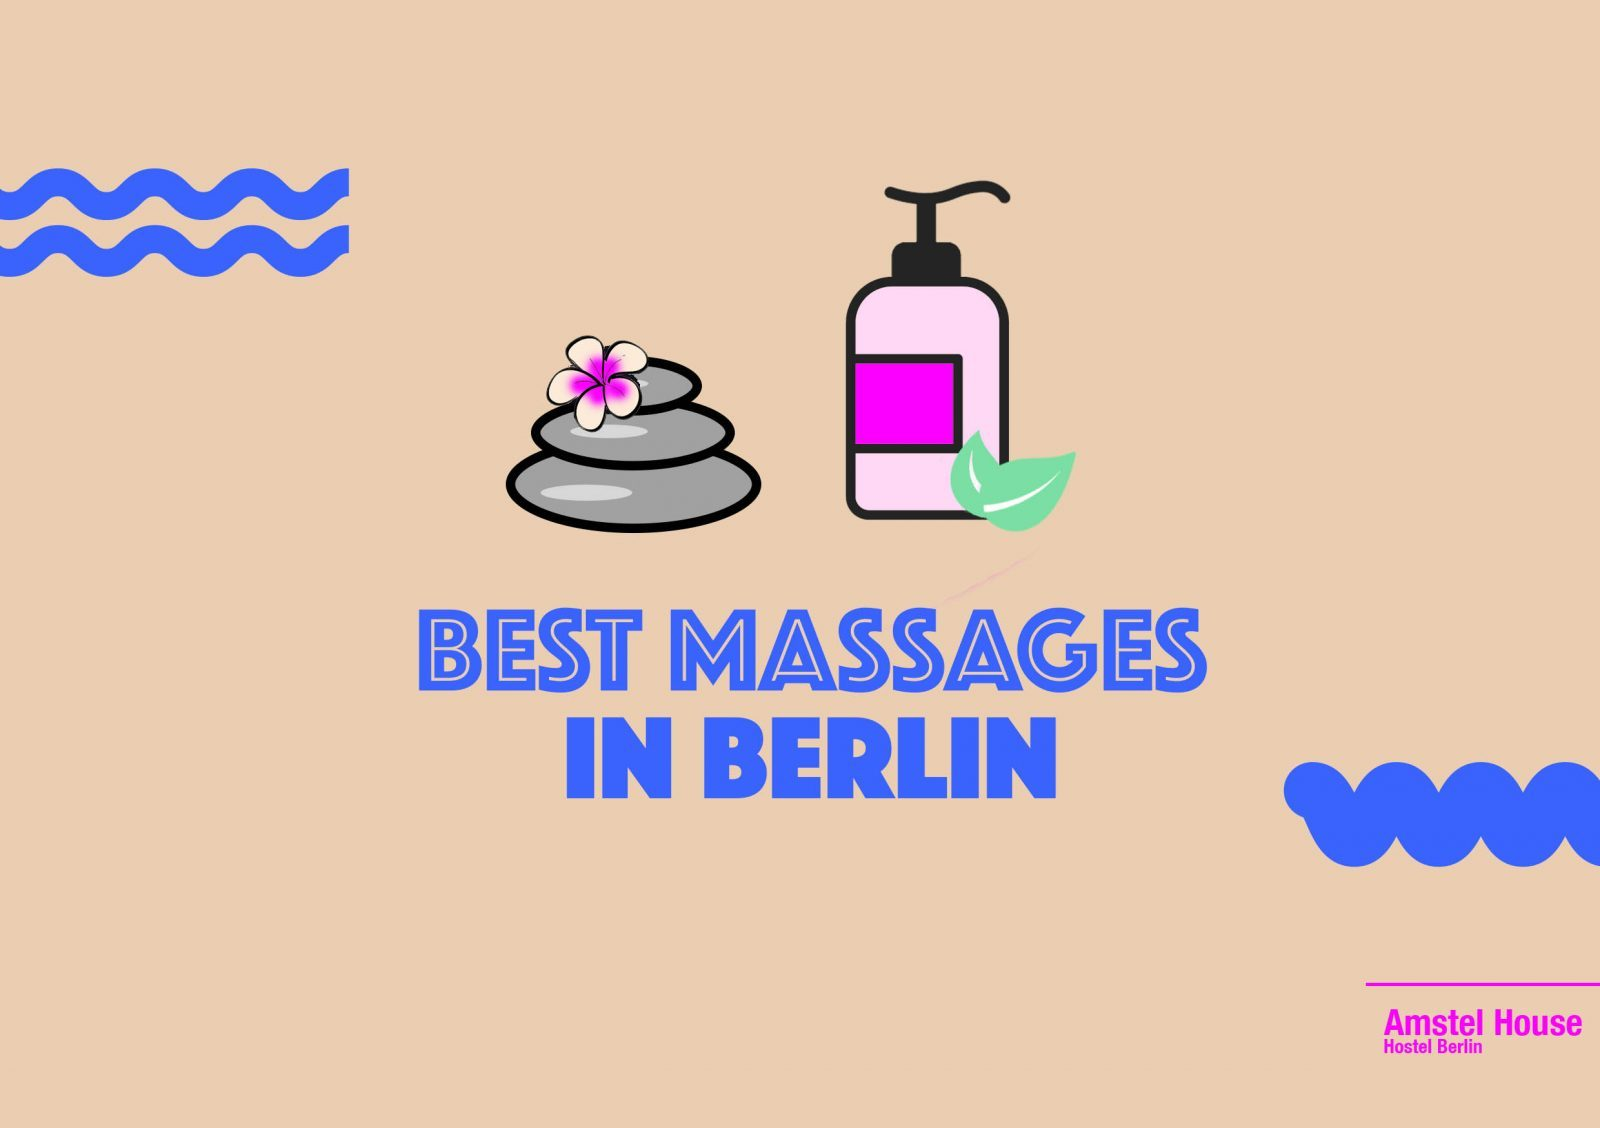 Best massages in Berlin - the most affordable and relaxing massages in Berlin